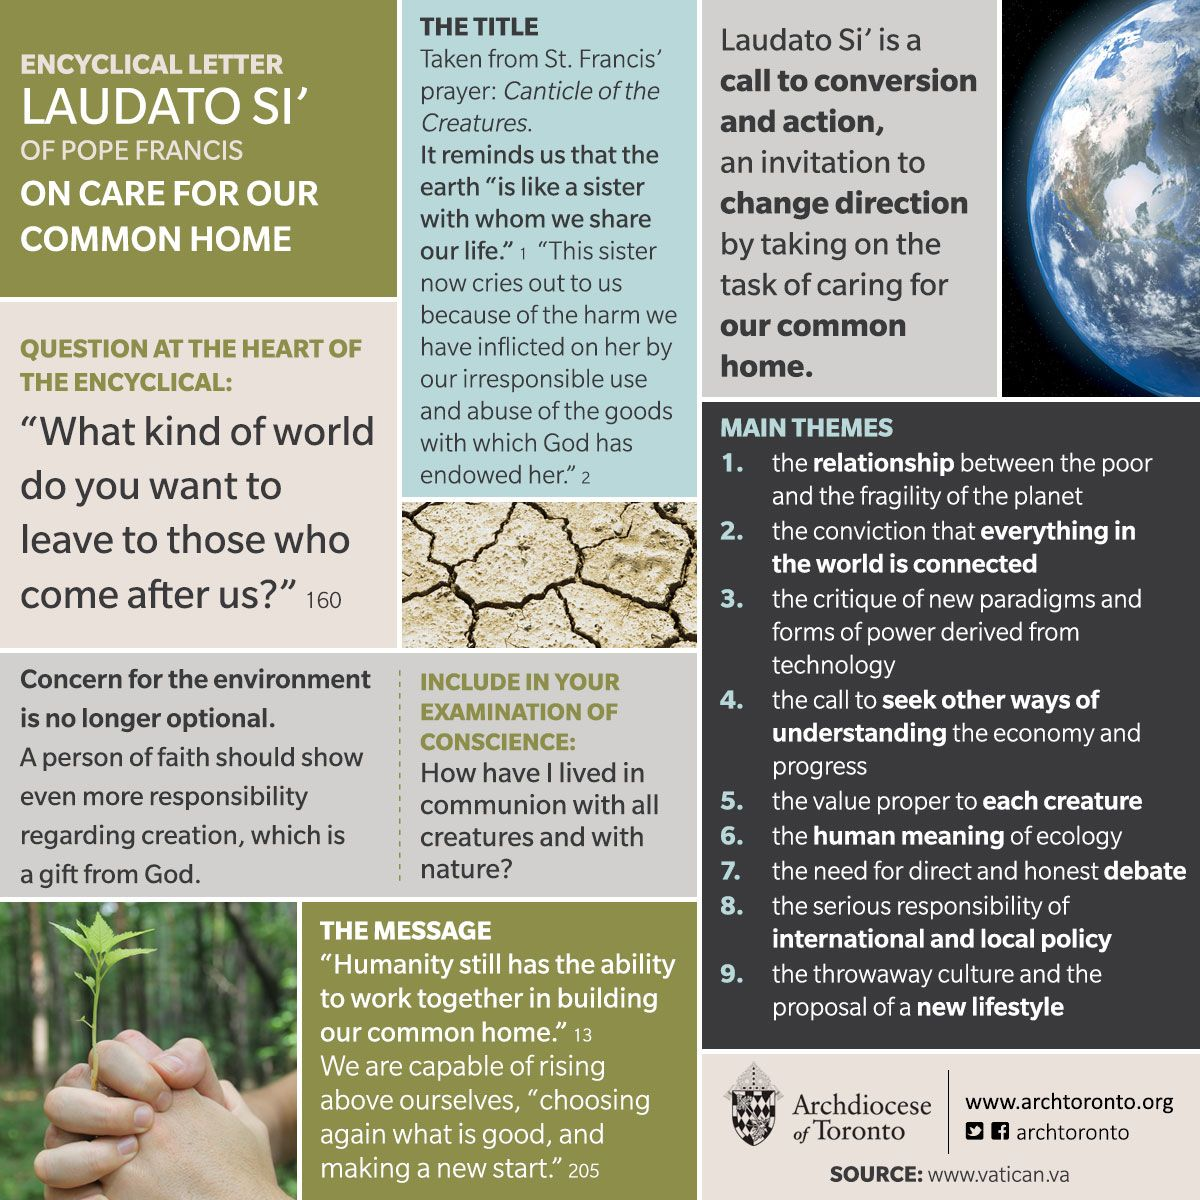 infographic encyclical letter laudato si on care for our common home by pope francis